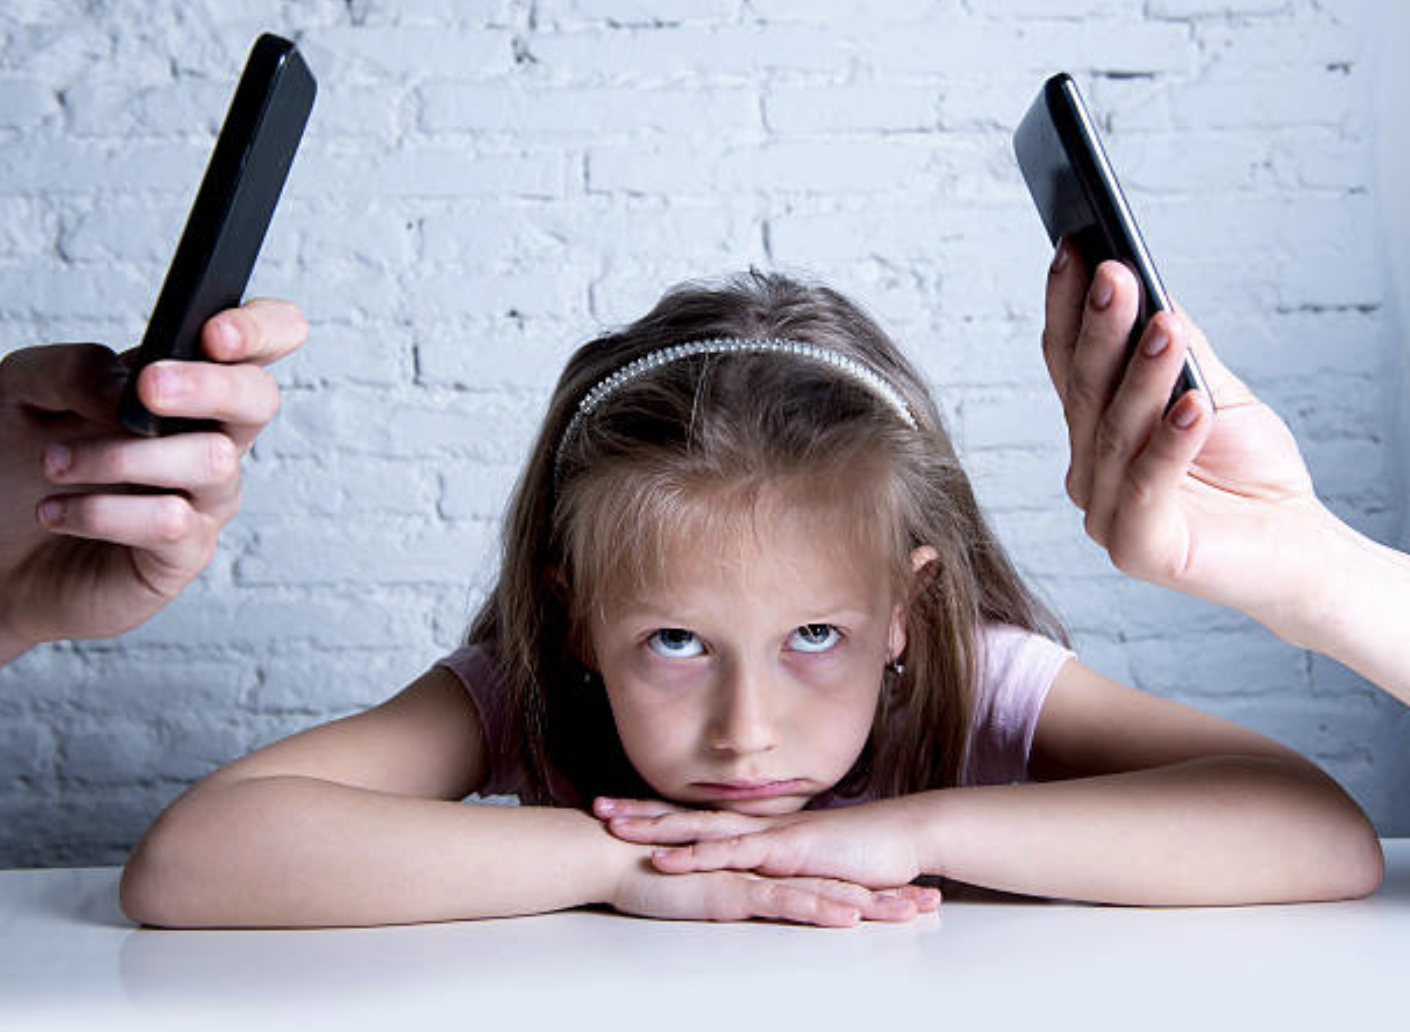 Is Your Cellphone Addiction Harming Your Child?